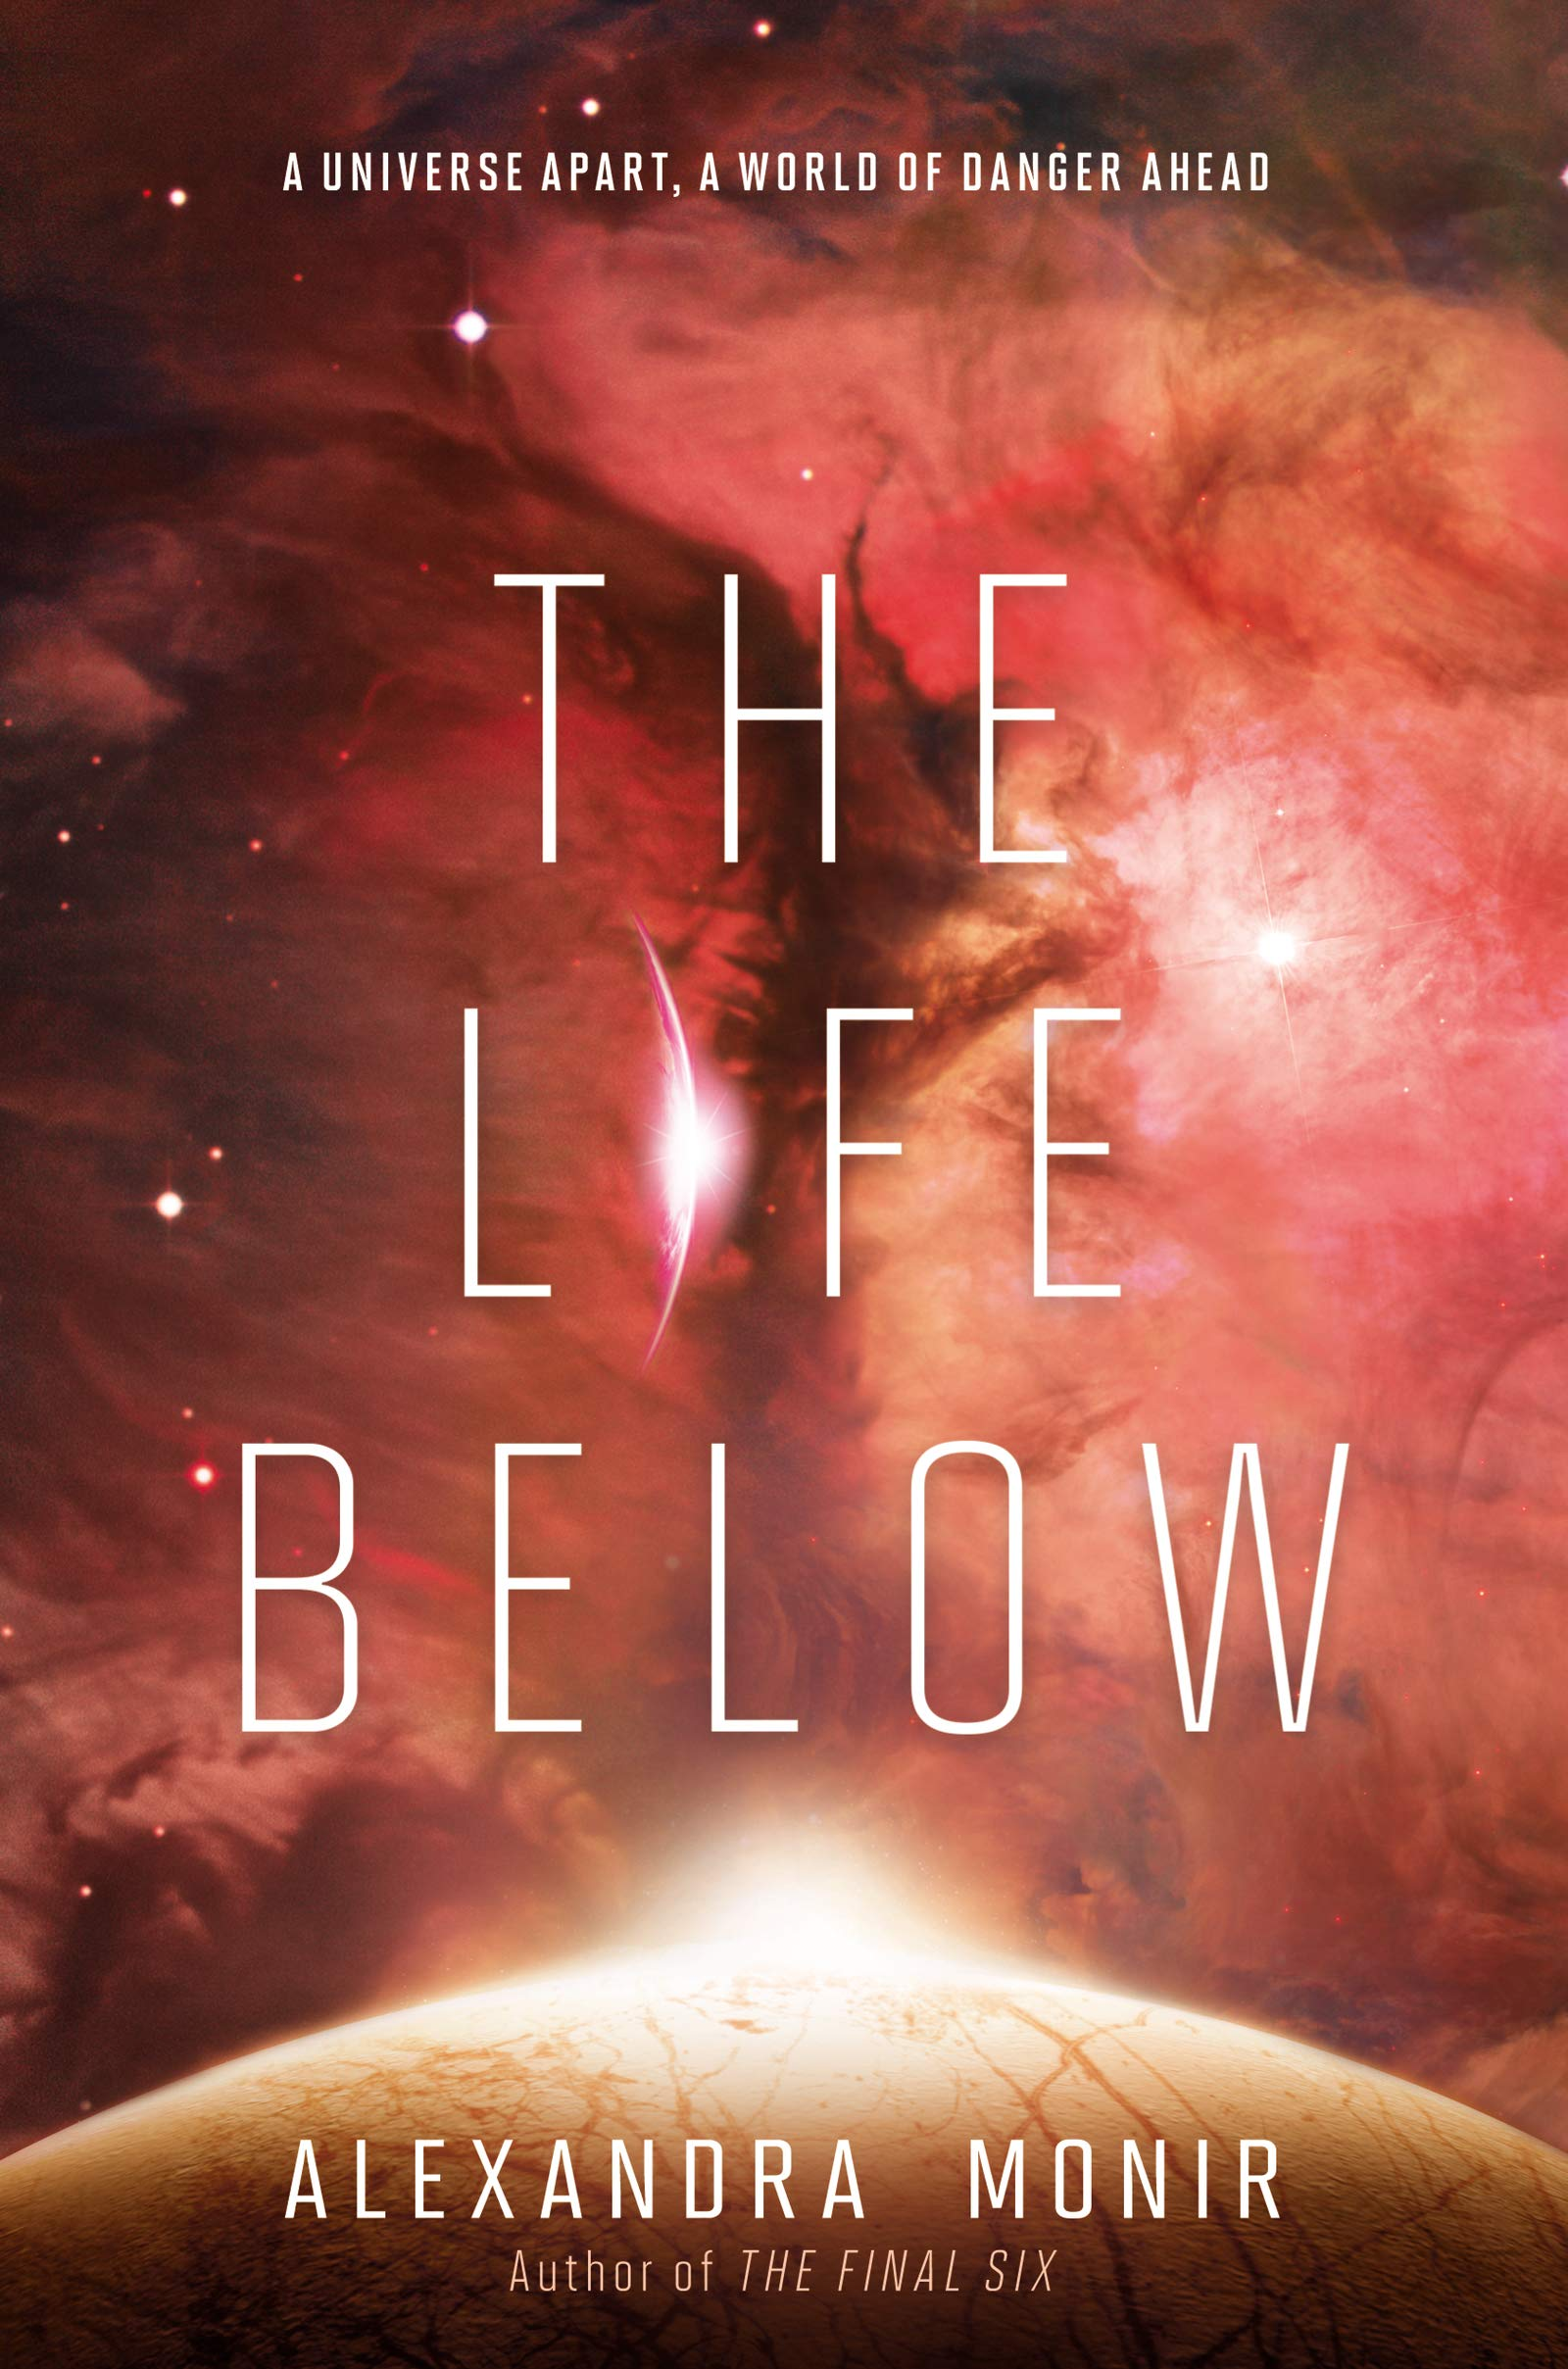 Amazon.com: The Life Below (9780062658975): Monir, Alexandra: Books